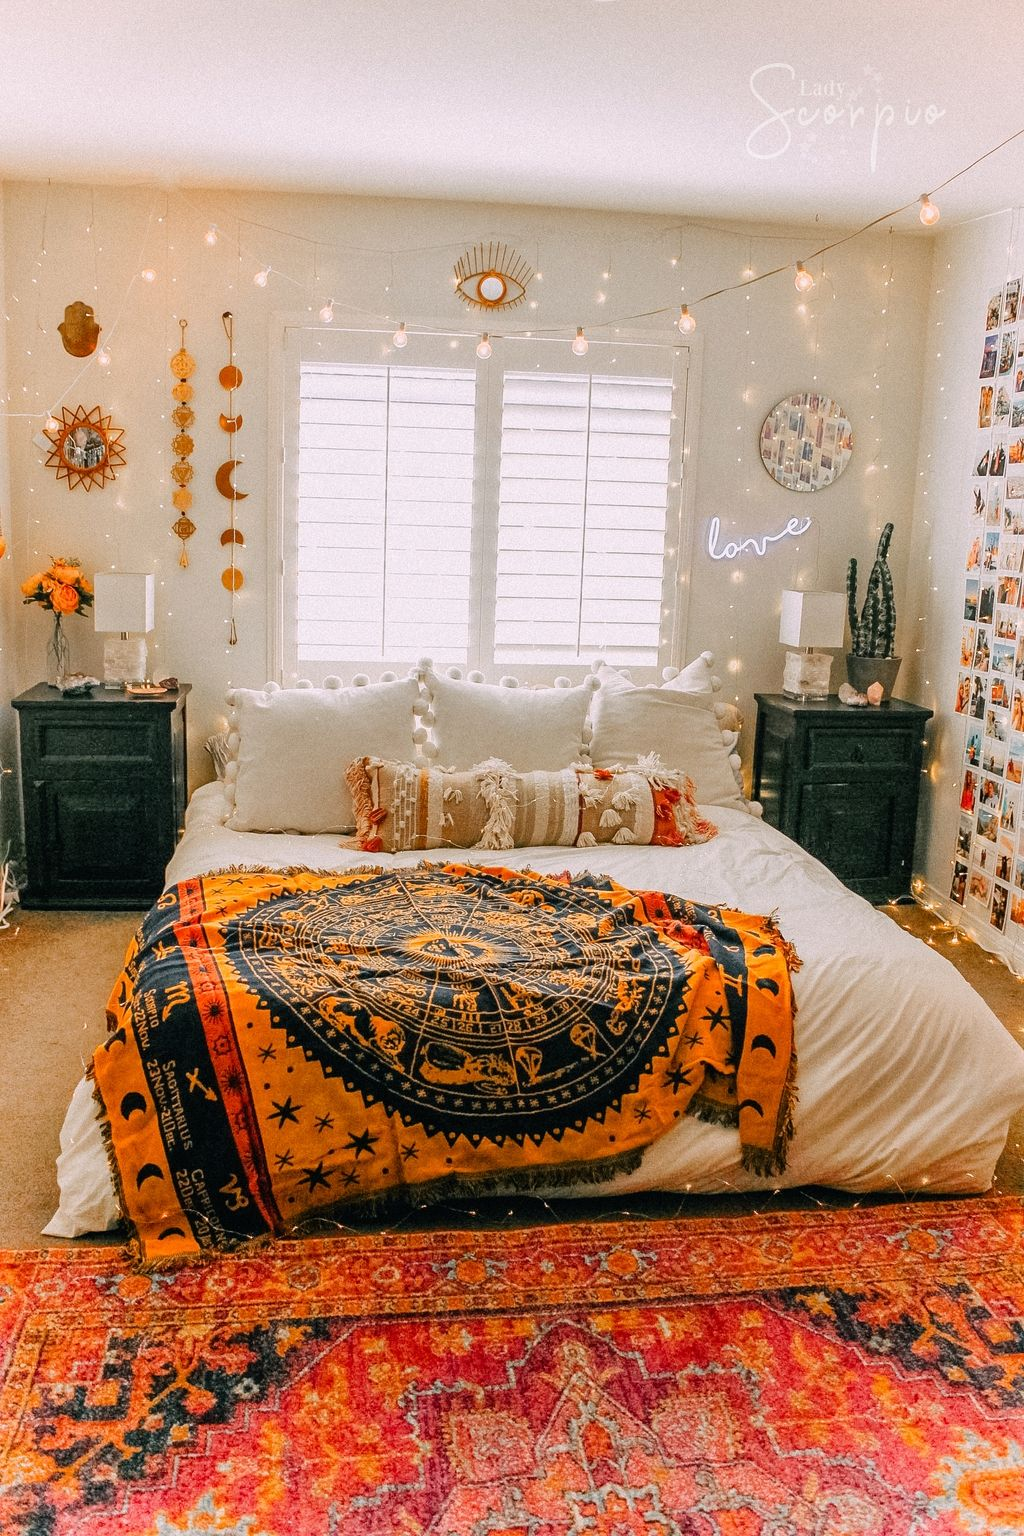 20+ Stunning Bohemian Bedroom Decor Ideas That Are Comfortable - LOVAHOMY